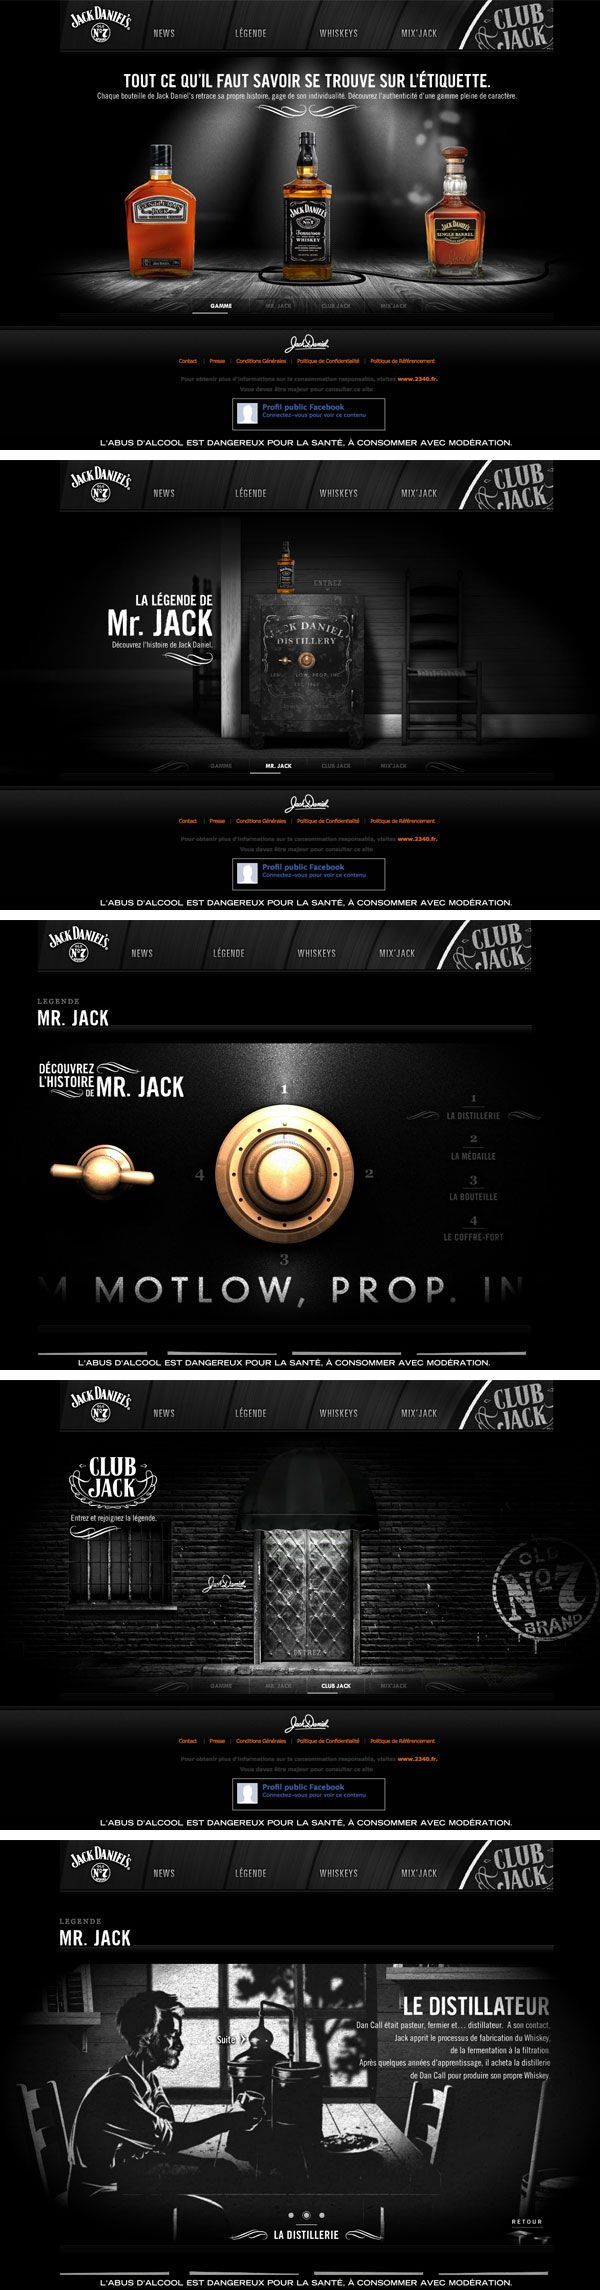 Jack Daniels | #webdesign #it #web #design #layout #userinterface #website #webdesign < repinned by www.BlickeDeeler.de | Visit our website www.blickedeeler.de/leistungen/webdesign